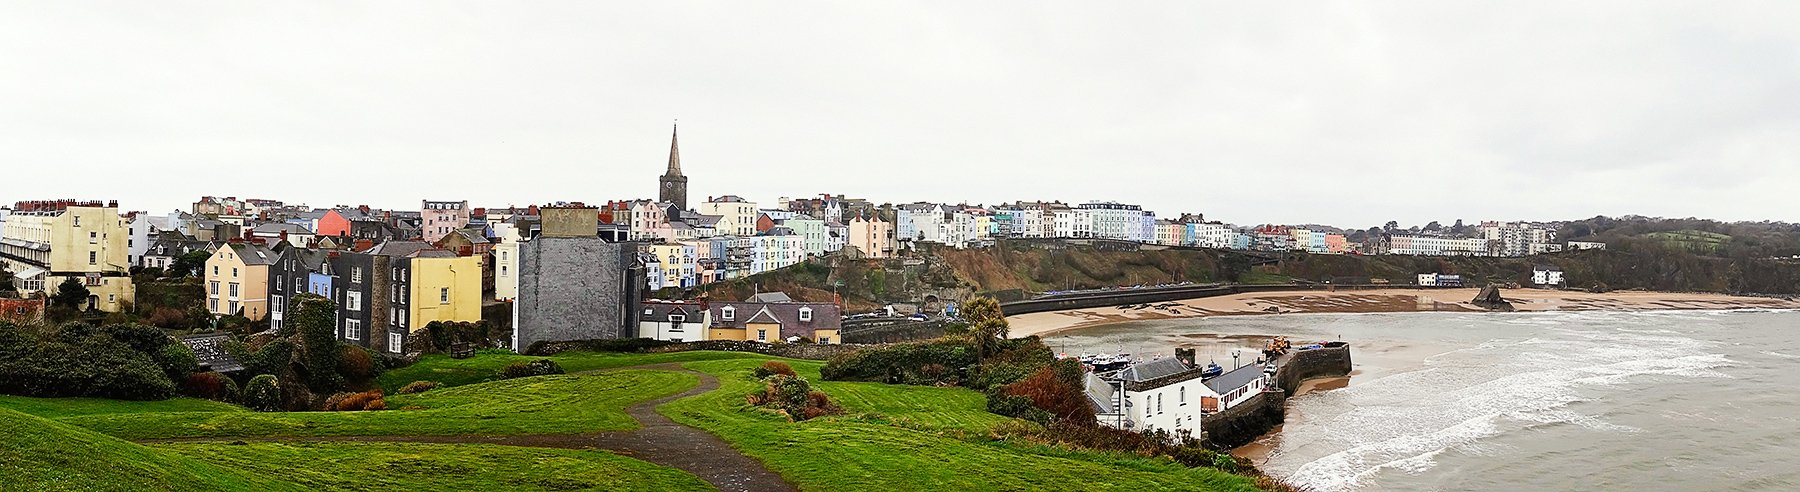 Charming seaside town of Tenby in Pembrokeshire